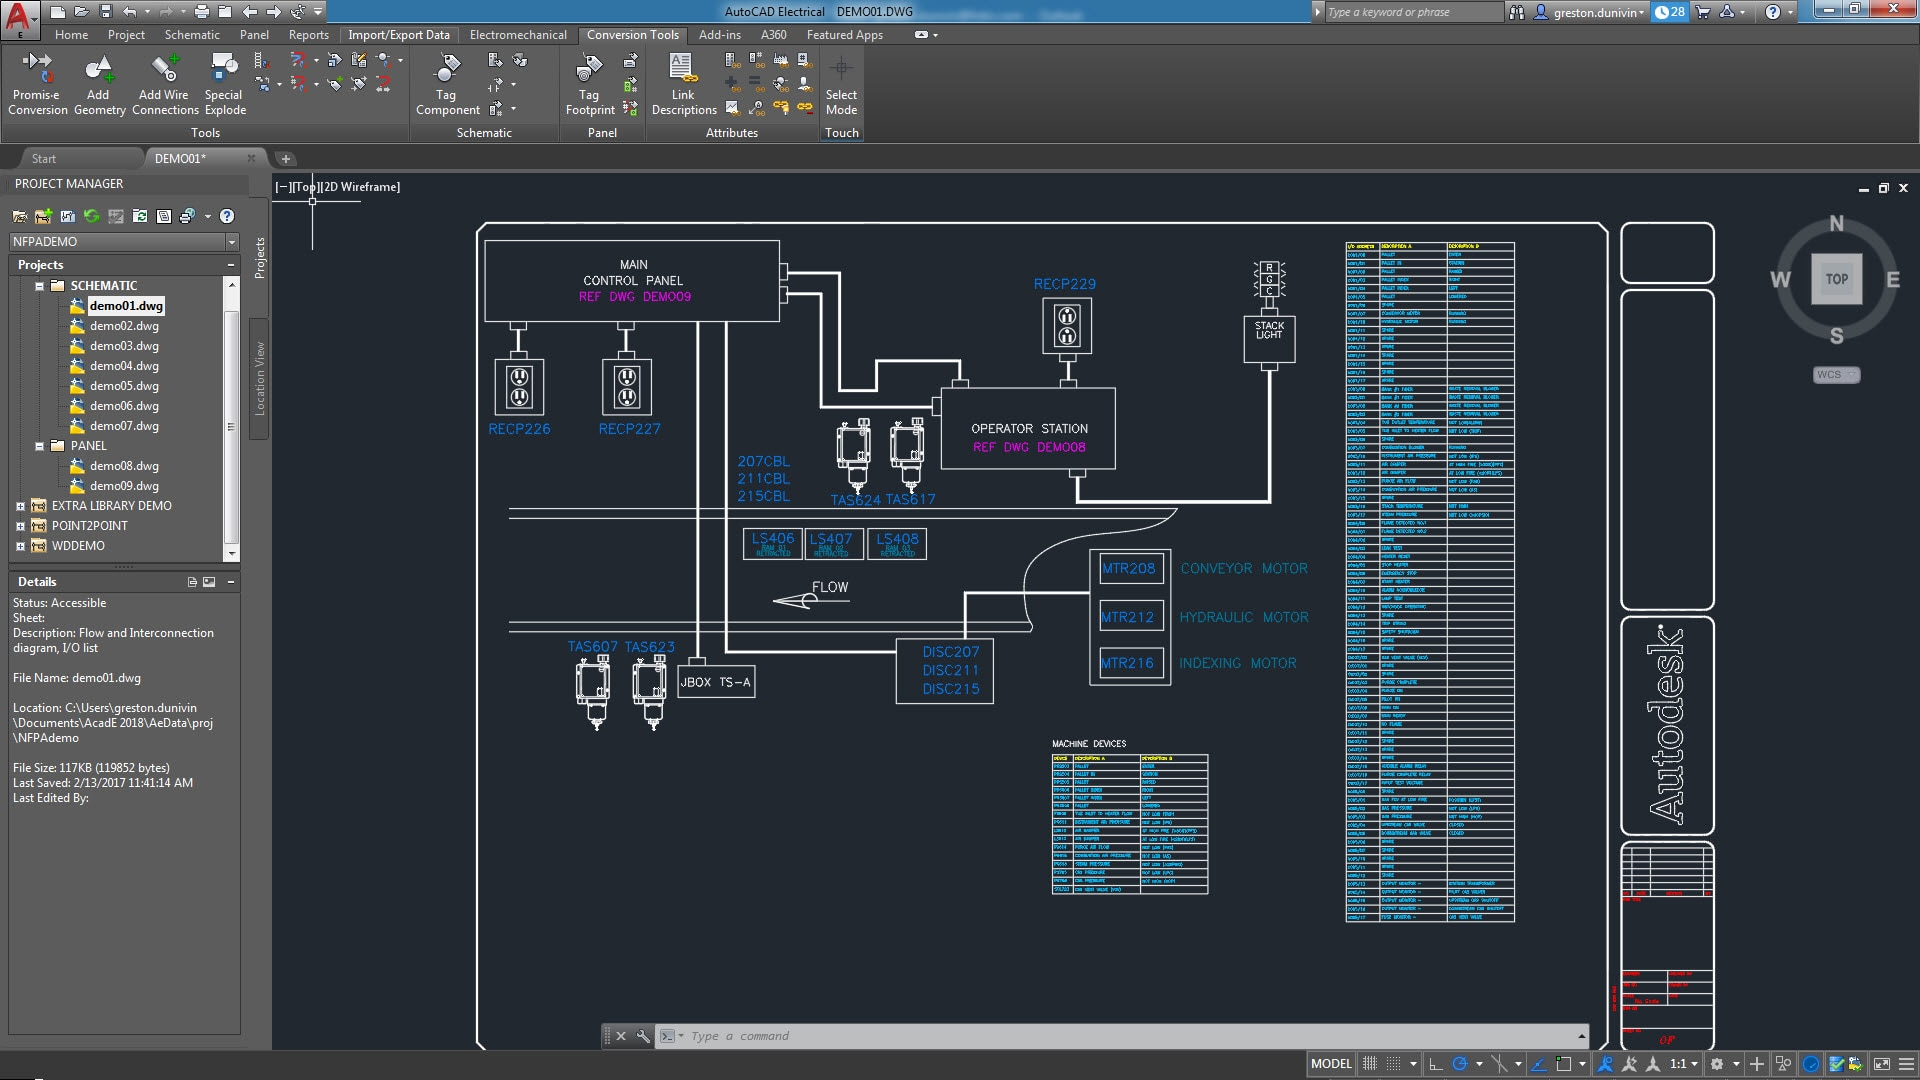 Autocad Electrical Toolset Design Software Multi Hp Wiring Diagram The Enables Customer And Supplier Collaboration